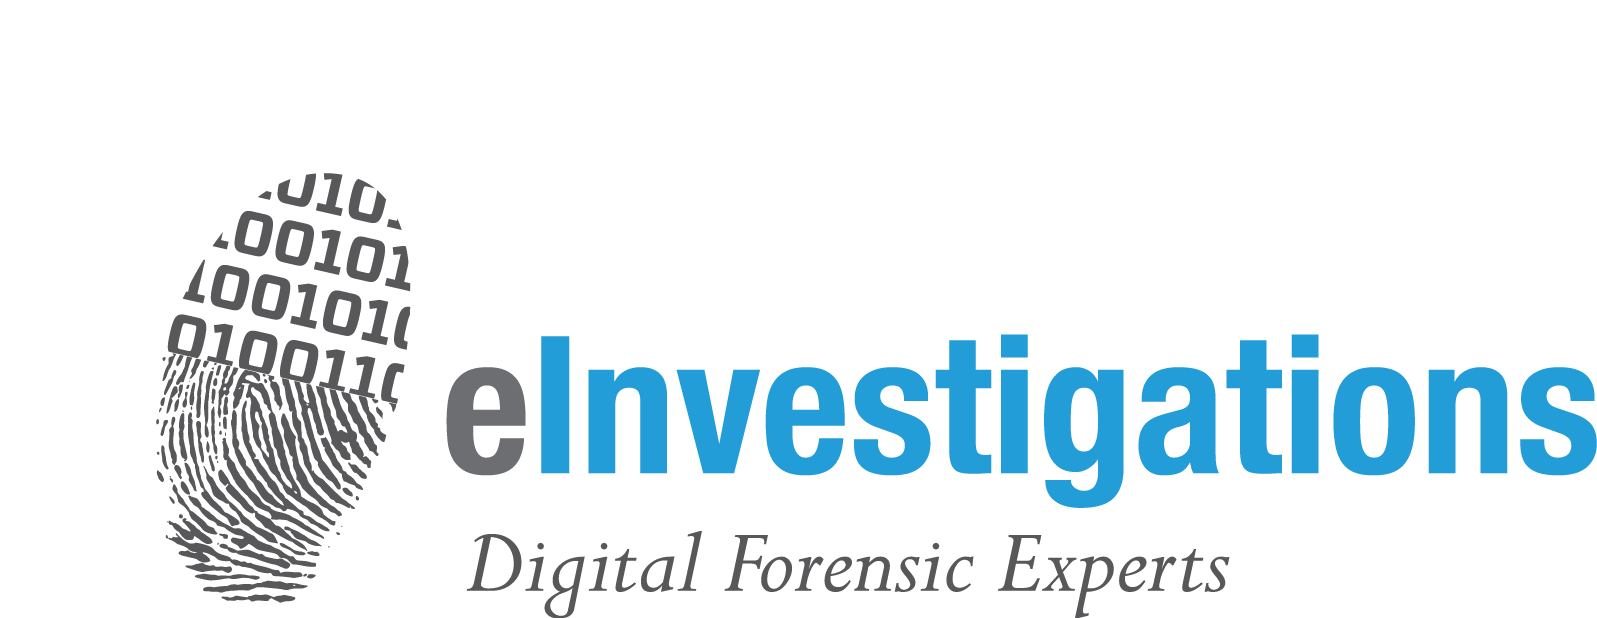 E Investigations Releases 5 Best Practices For Digital Evidence Collection And Preservation In A Forensic Investigation